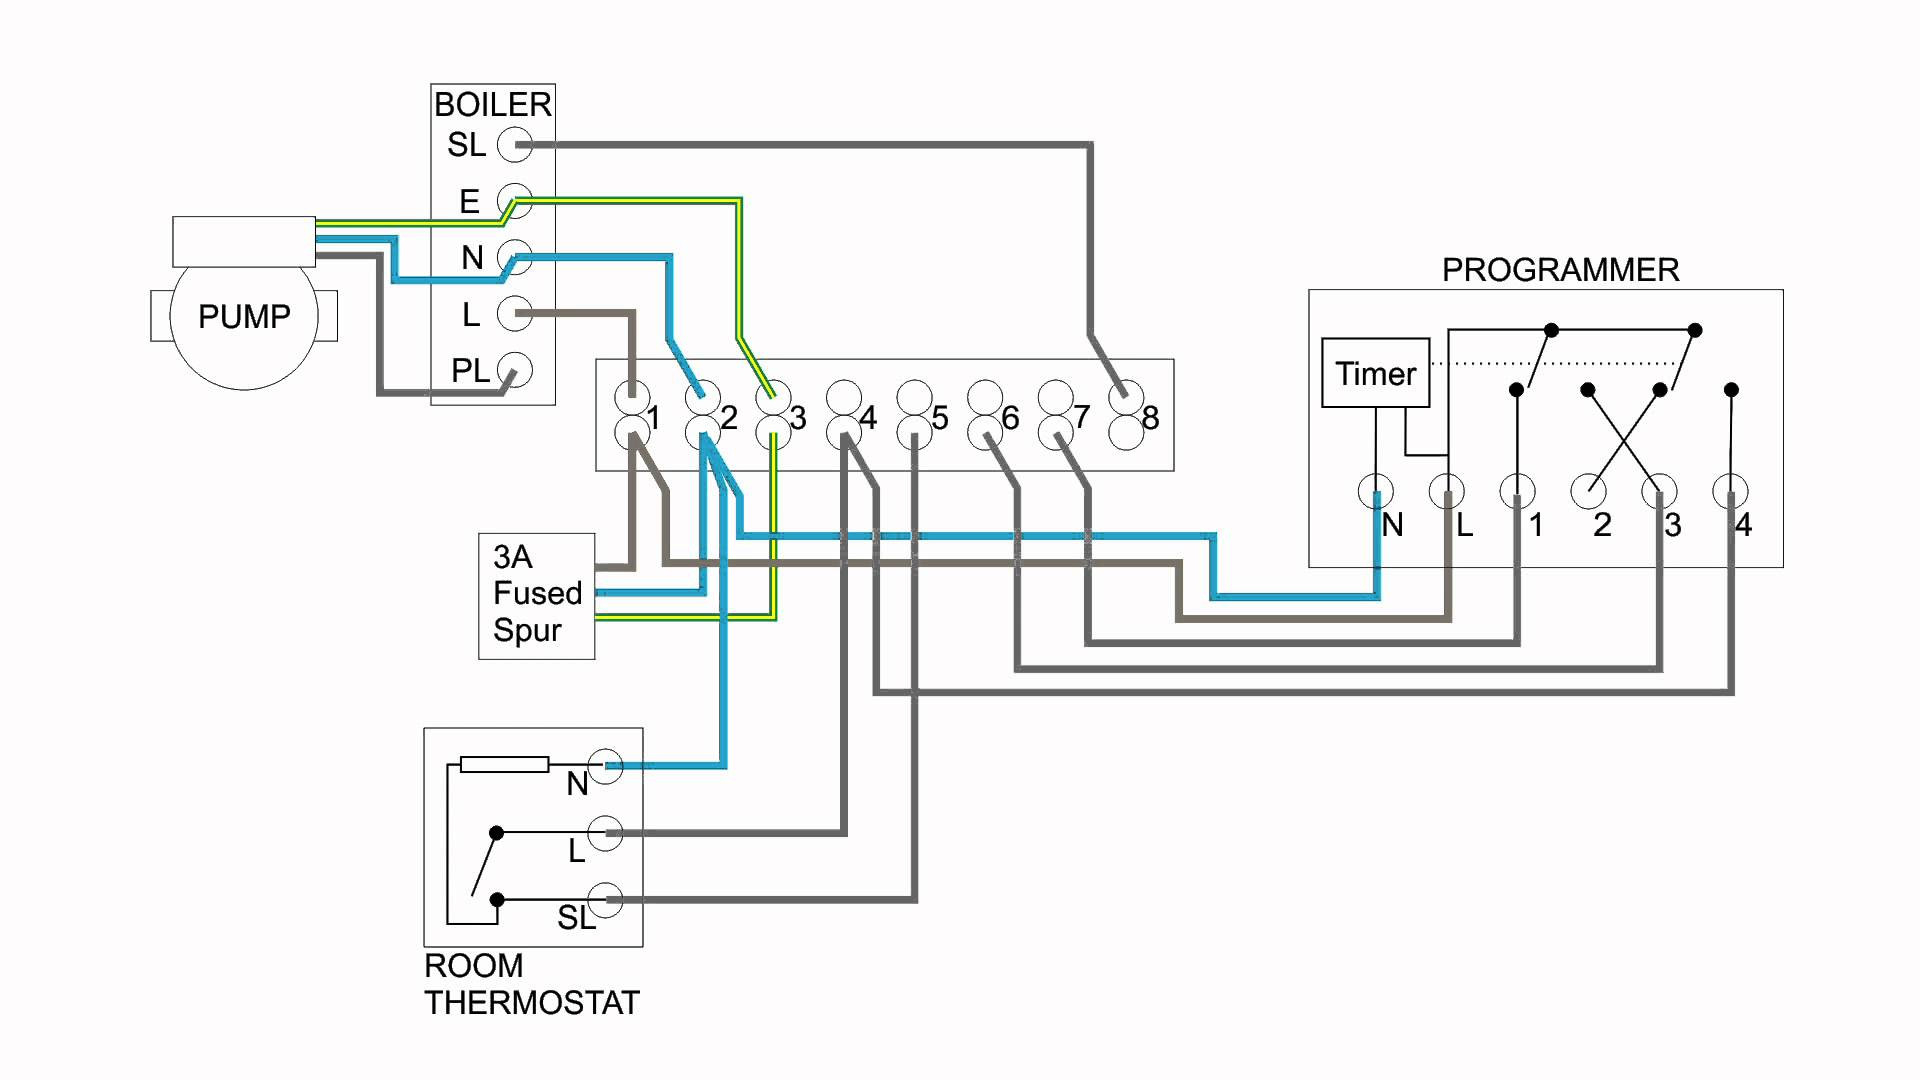 intermatic k4221c wiring diagram Download-central boiler thermostat wiring diagram Download Hive Thermostat Wiring Diagram New Central Heating Electrical Wiring 11-q